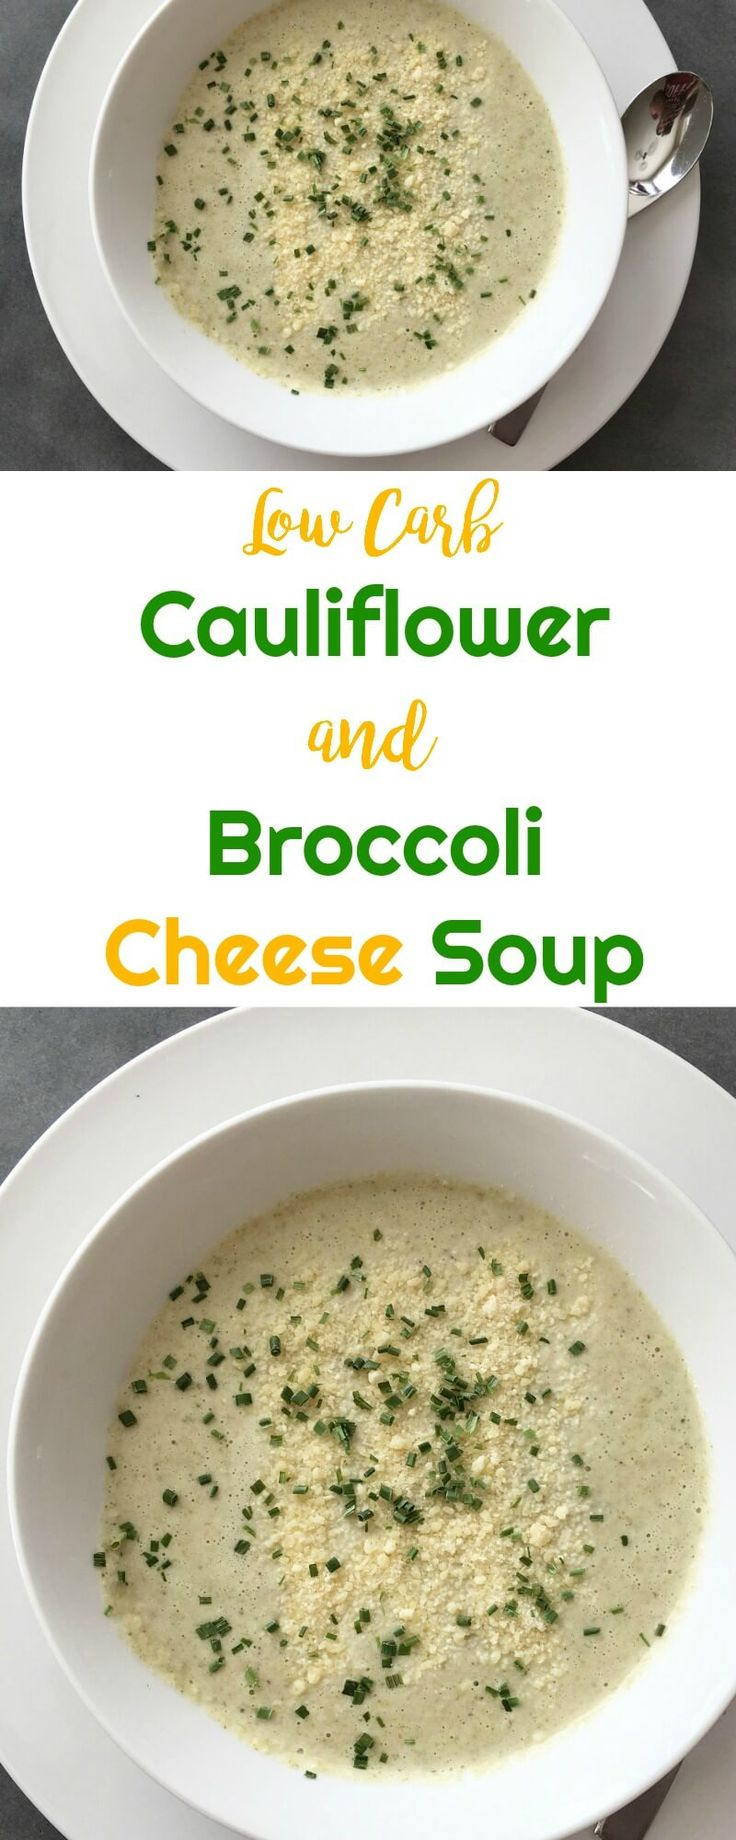 Low Carb Cauliflower and Broccoli Cheese Soup | Peace Love and Low Carb #lowcarbsoup #cauliflowerandbroccolicheesesoup #lowcarb #keto #lowcarbrecipe via @PeaceLoveLoCarb